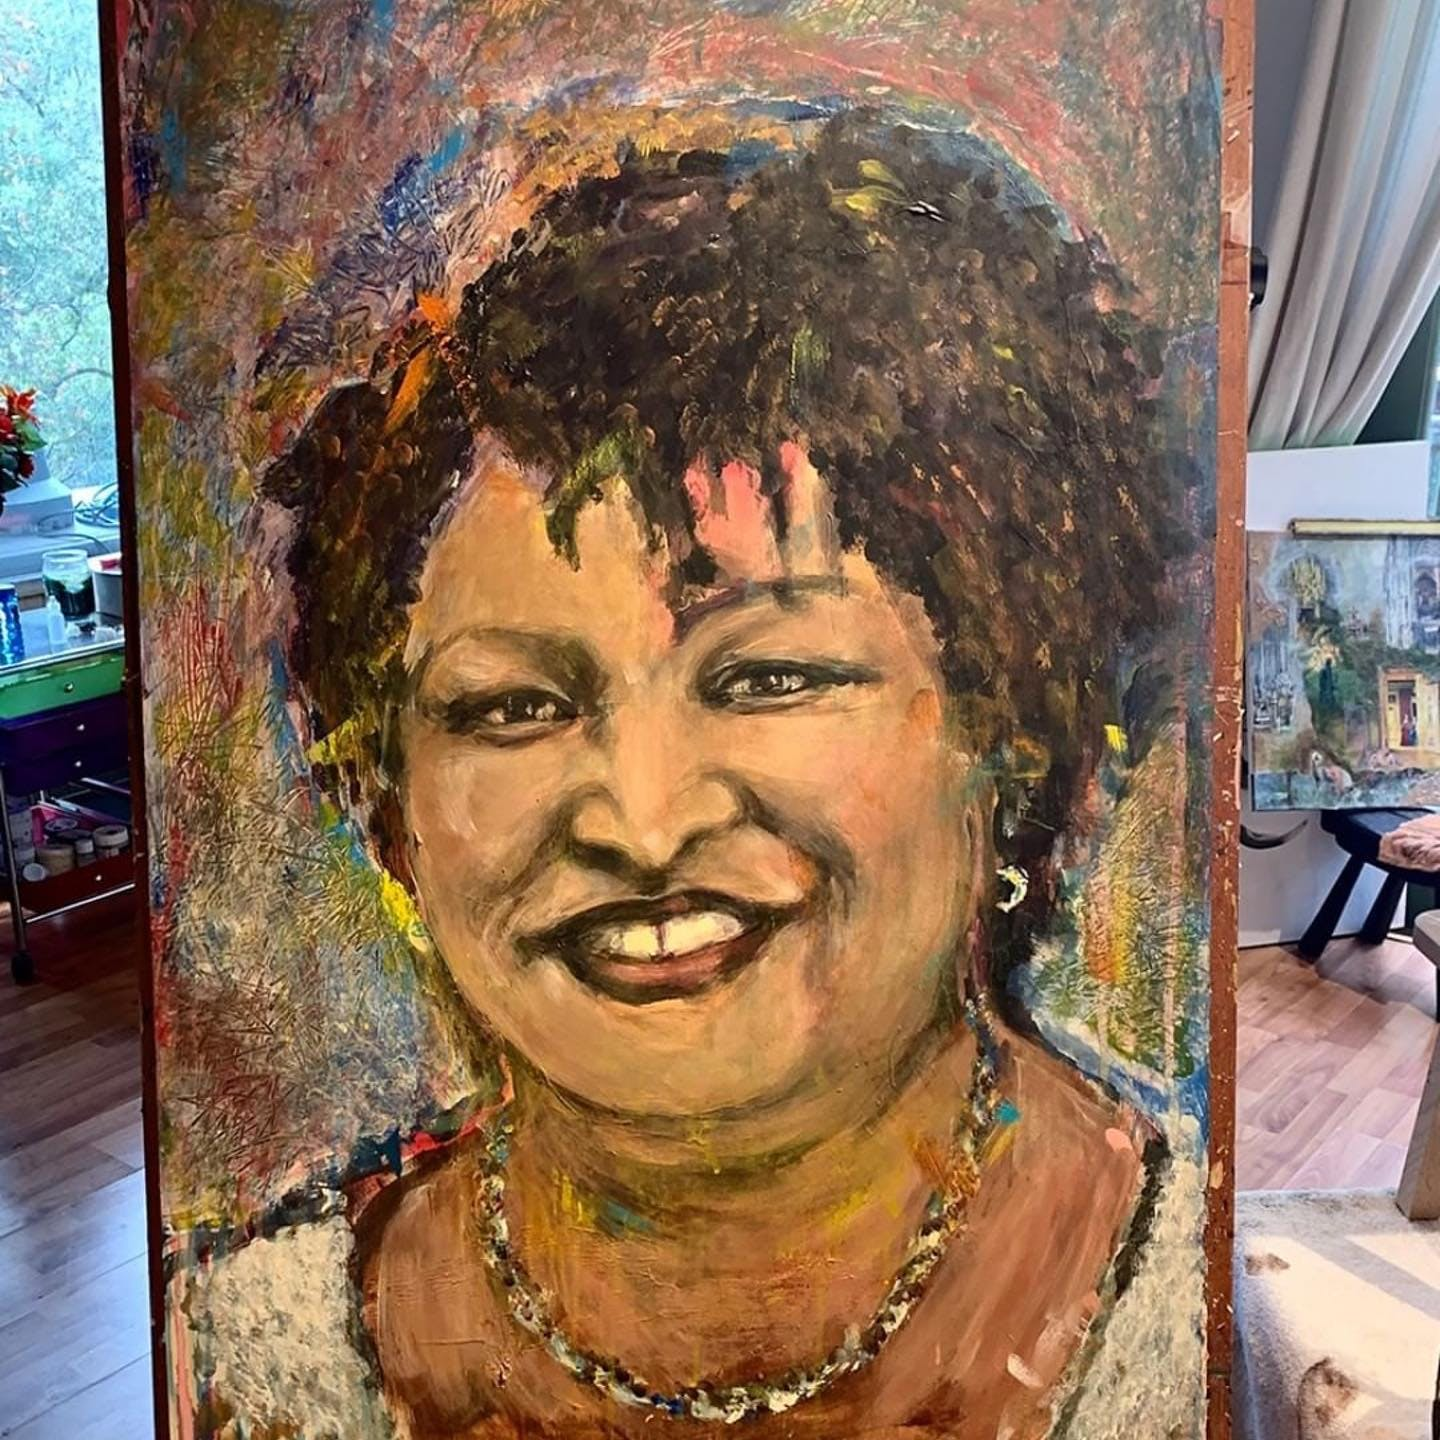 """#Repost @joancbaezofficial ・・・ Dear Stacey Abrams,  This portrait I painted of you is titled, """"Georgia On My Mind.""""  There is nowhere in this country right now more vital to the preservation of democracy than the state of Georgia. And there's nothing more vital to the state of Georgia than you and your thousands of coworkers. You all are proving to have more vision, savvy, grit, fire, and brains than your opposition could have thought possible. You are making """"good trouble.""""  You are admired and loved, prayed for and depended upon, by people from every corner of this beleaguered nation. Keep your eyes on the prize. And we'll keep our loving eyes on Georgia.  Yours,  Joan Baez  (Watch this Instagram profile for an upcoming unique opportunity to support Stacey Abrams' Fair Fight organization!) #fairfight2020 #fairfightaction #staceyabrams @staceyabrams @fairfightaction"""